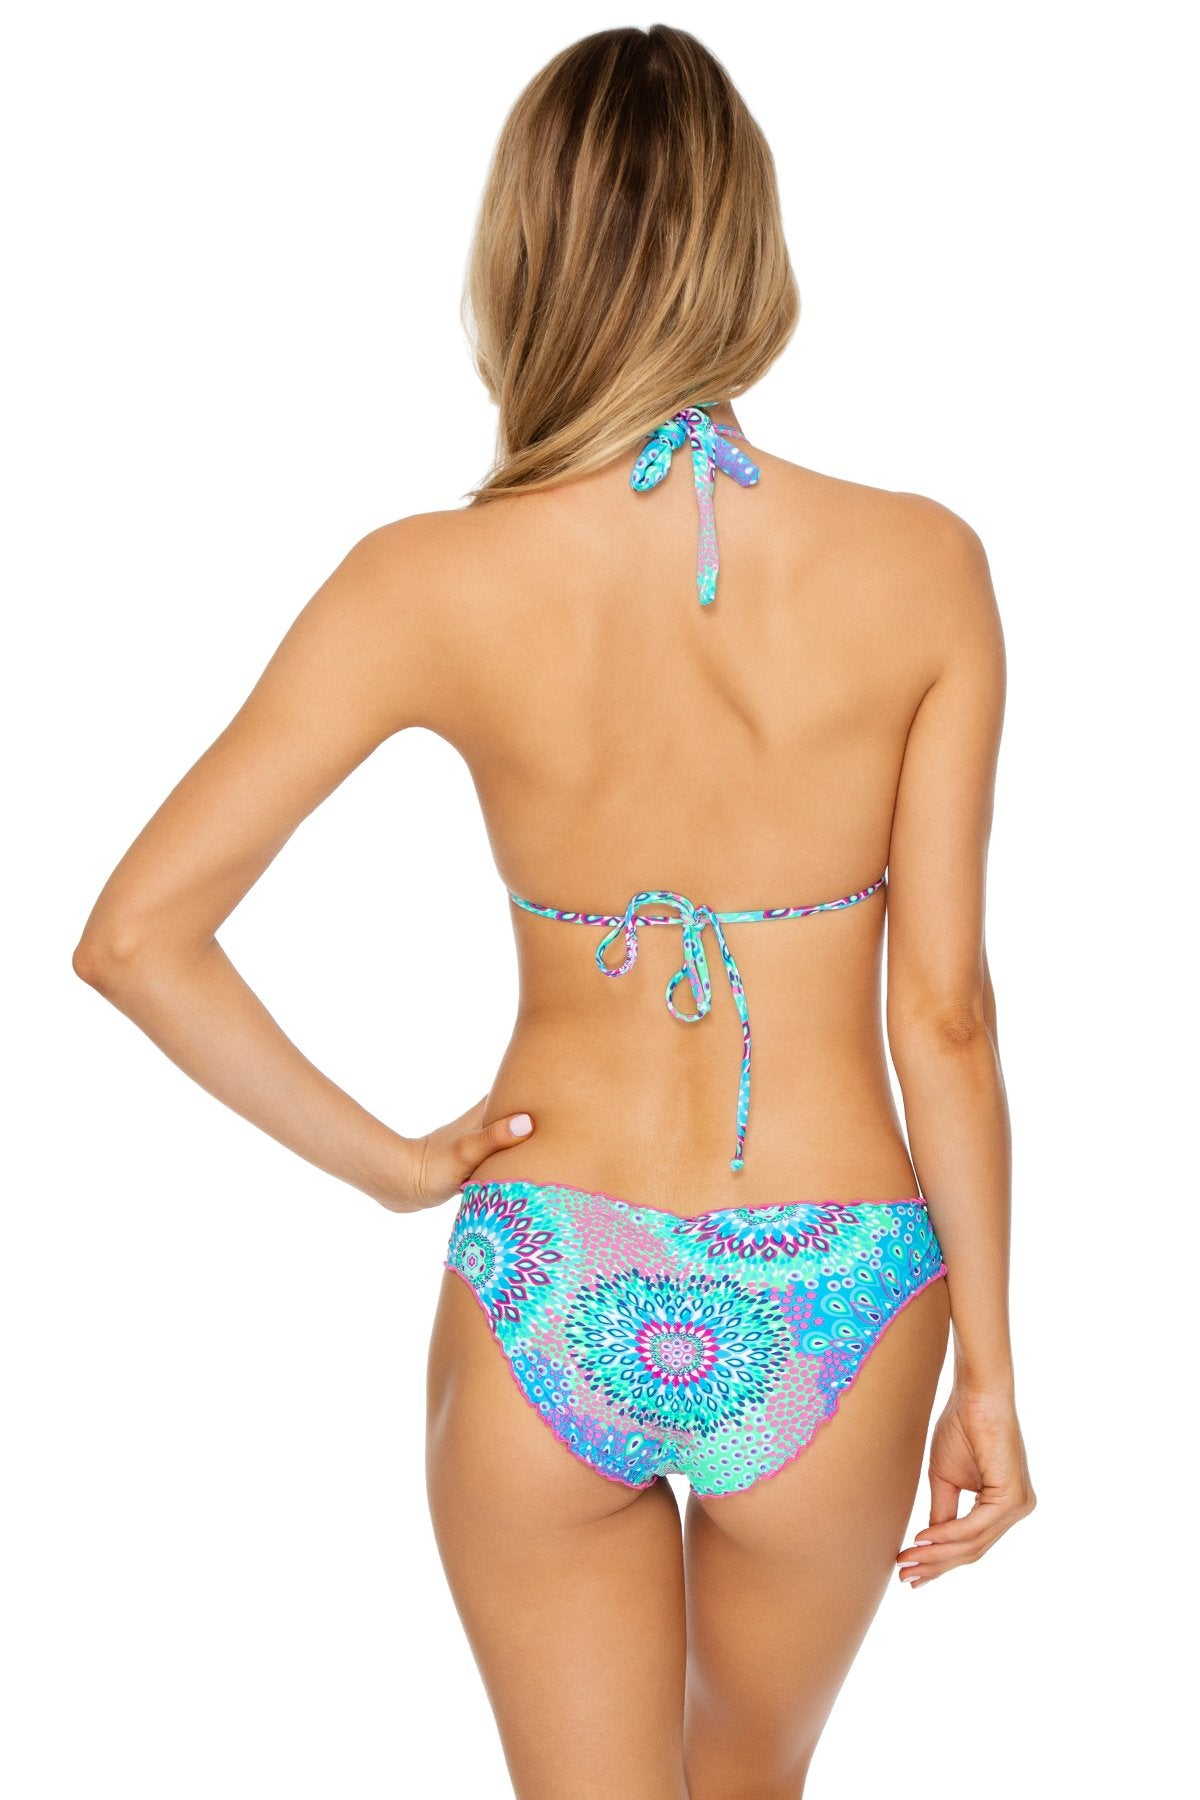 GOTAS DE CRISTAL - Molded Cup Tri Halter & Full Ruched Back Bottom • Multicolor